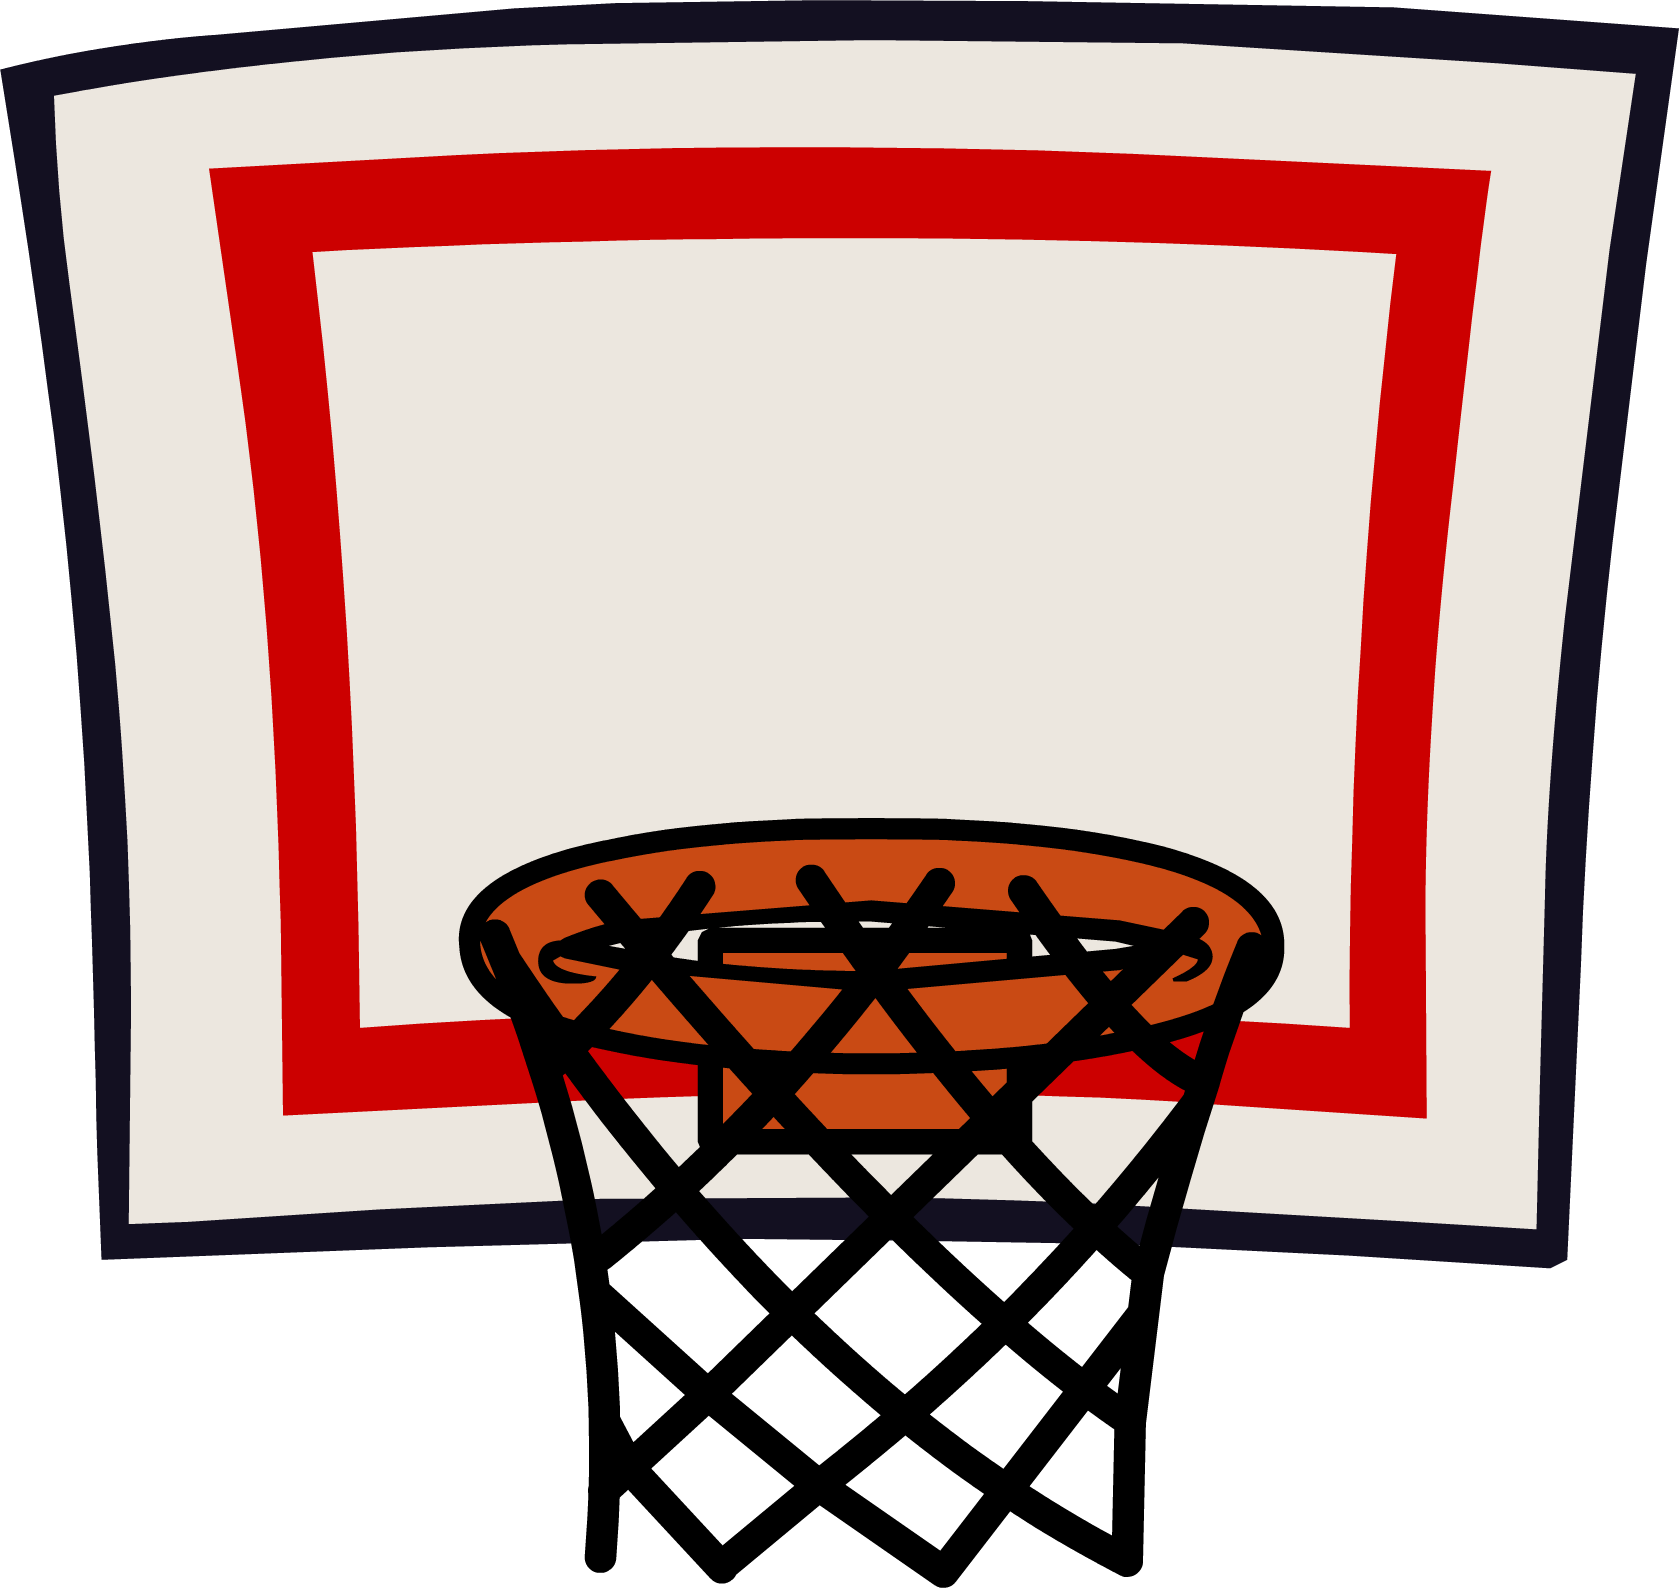 Basketball hoop clipart png - ClipartFes-Basketball hoop clipart png - ClipartFest-8